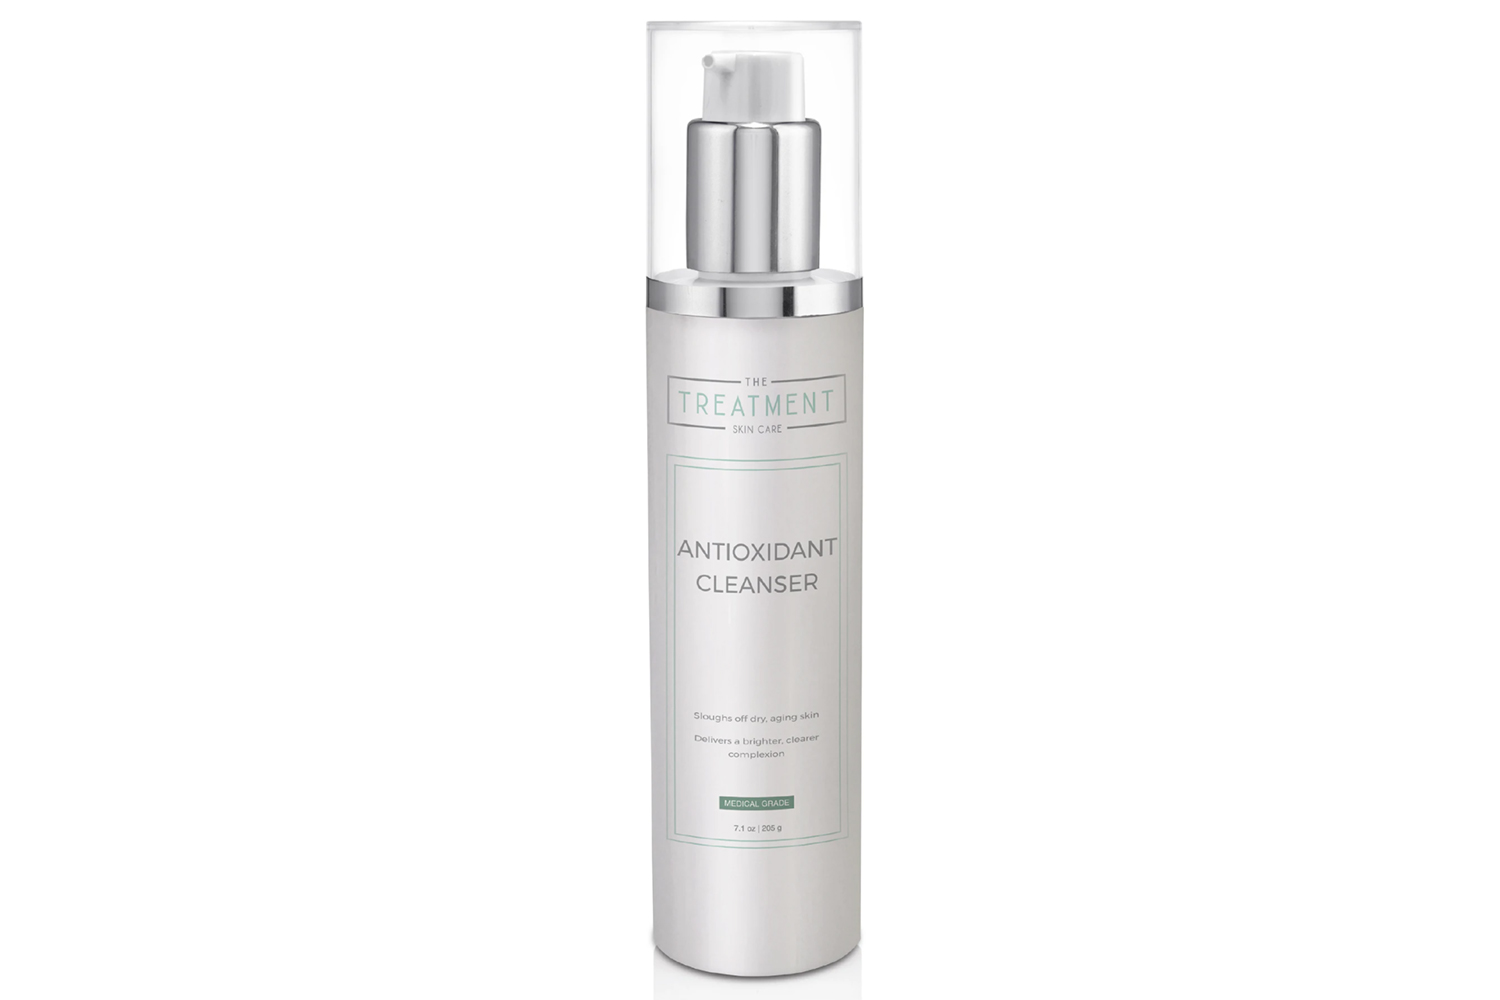 The Treatment Skin Boutique Antioxidant Cleanser